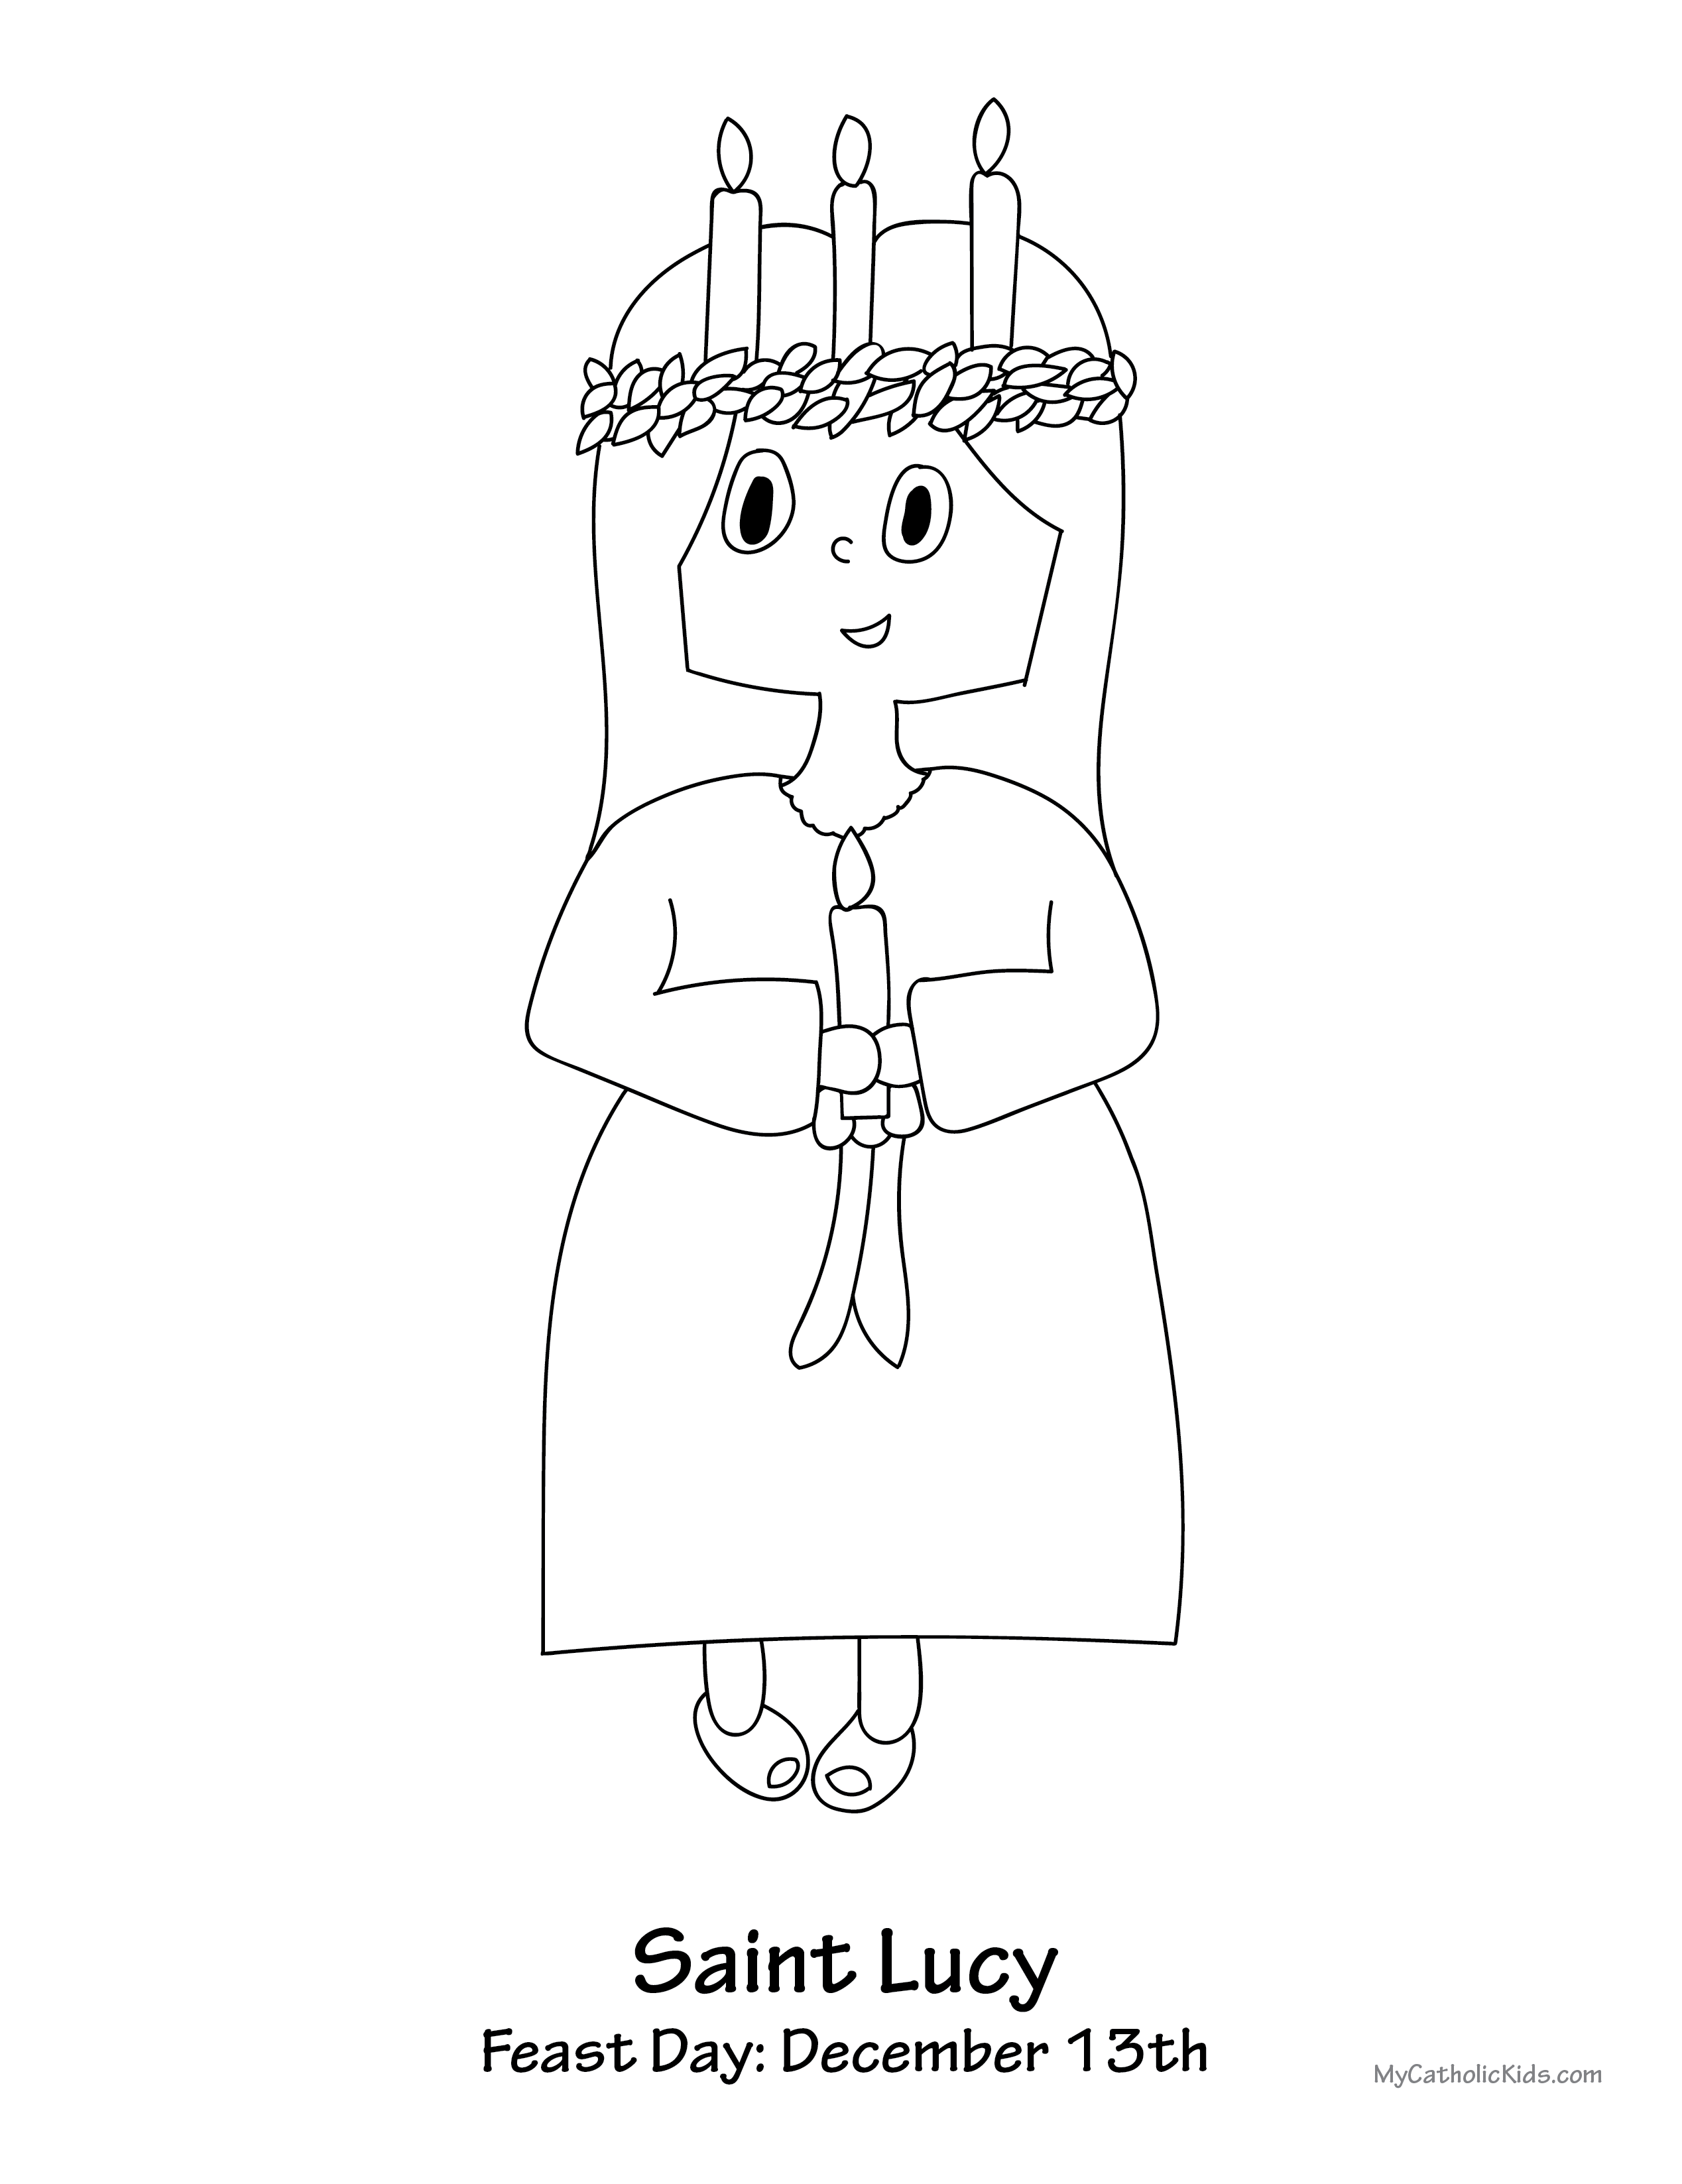 Saint Lucy coloring sheet